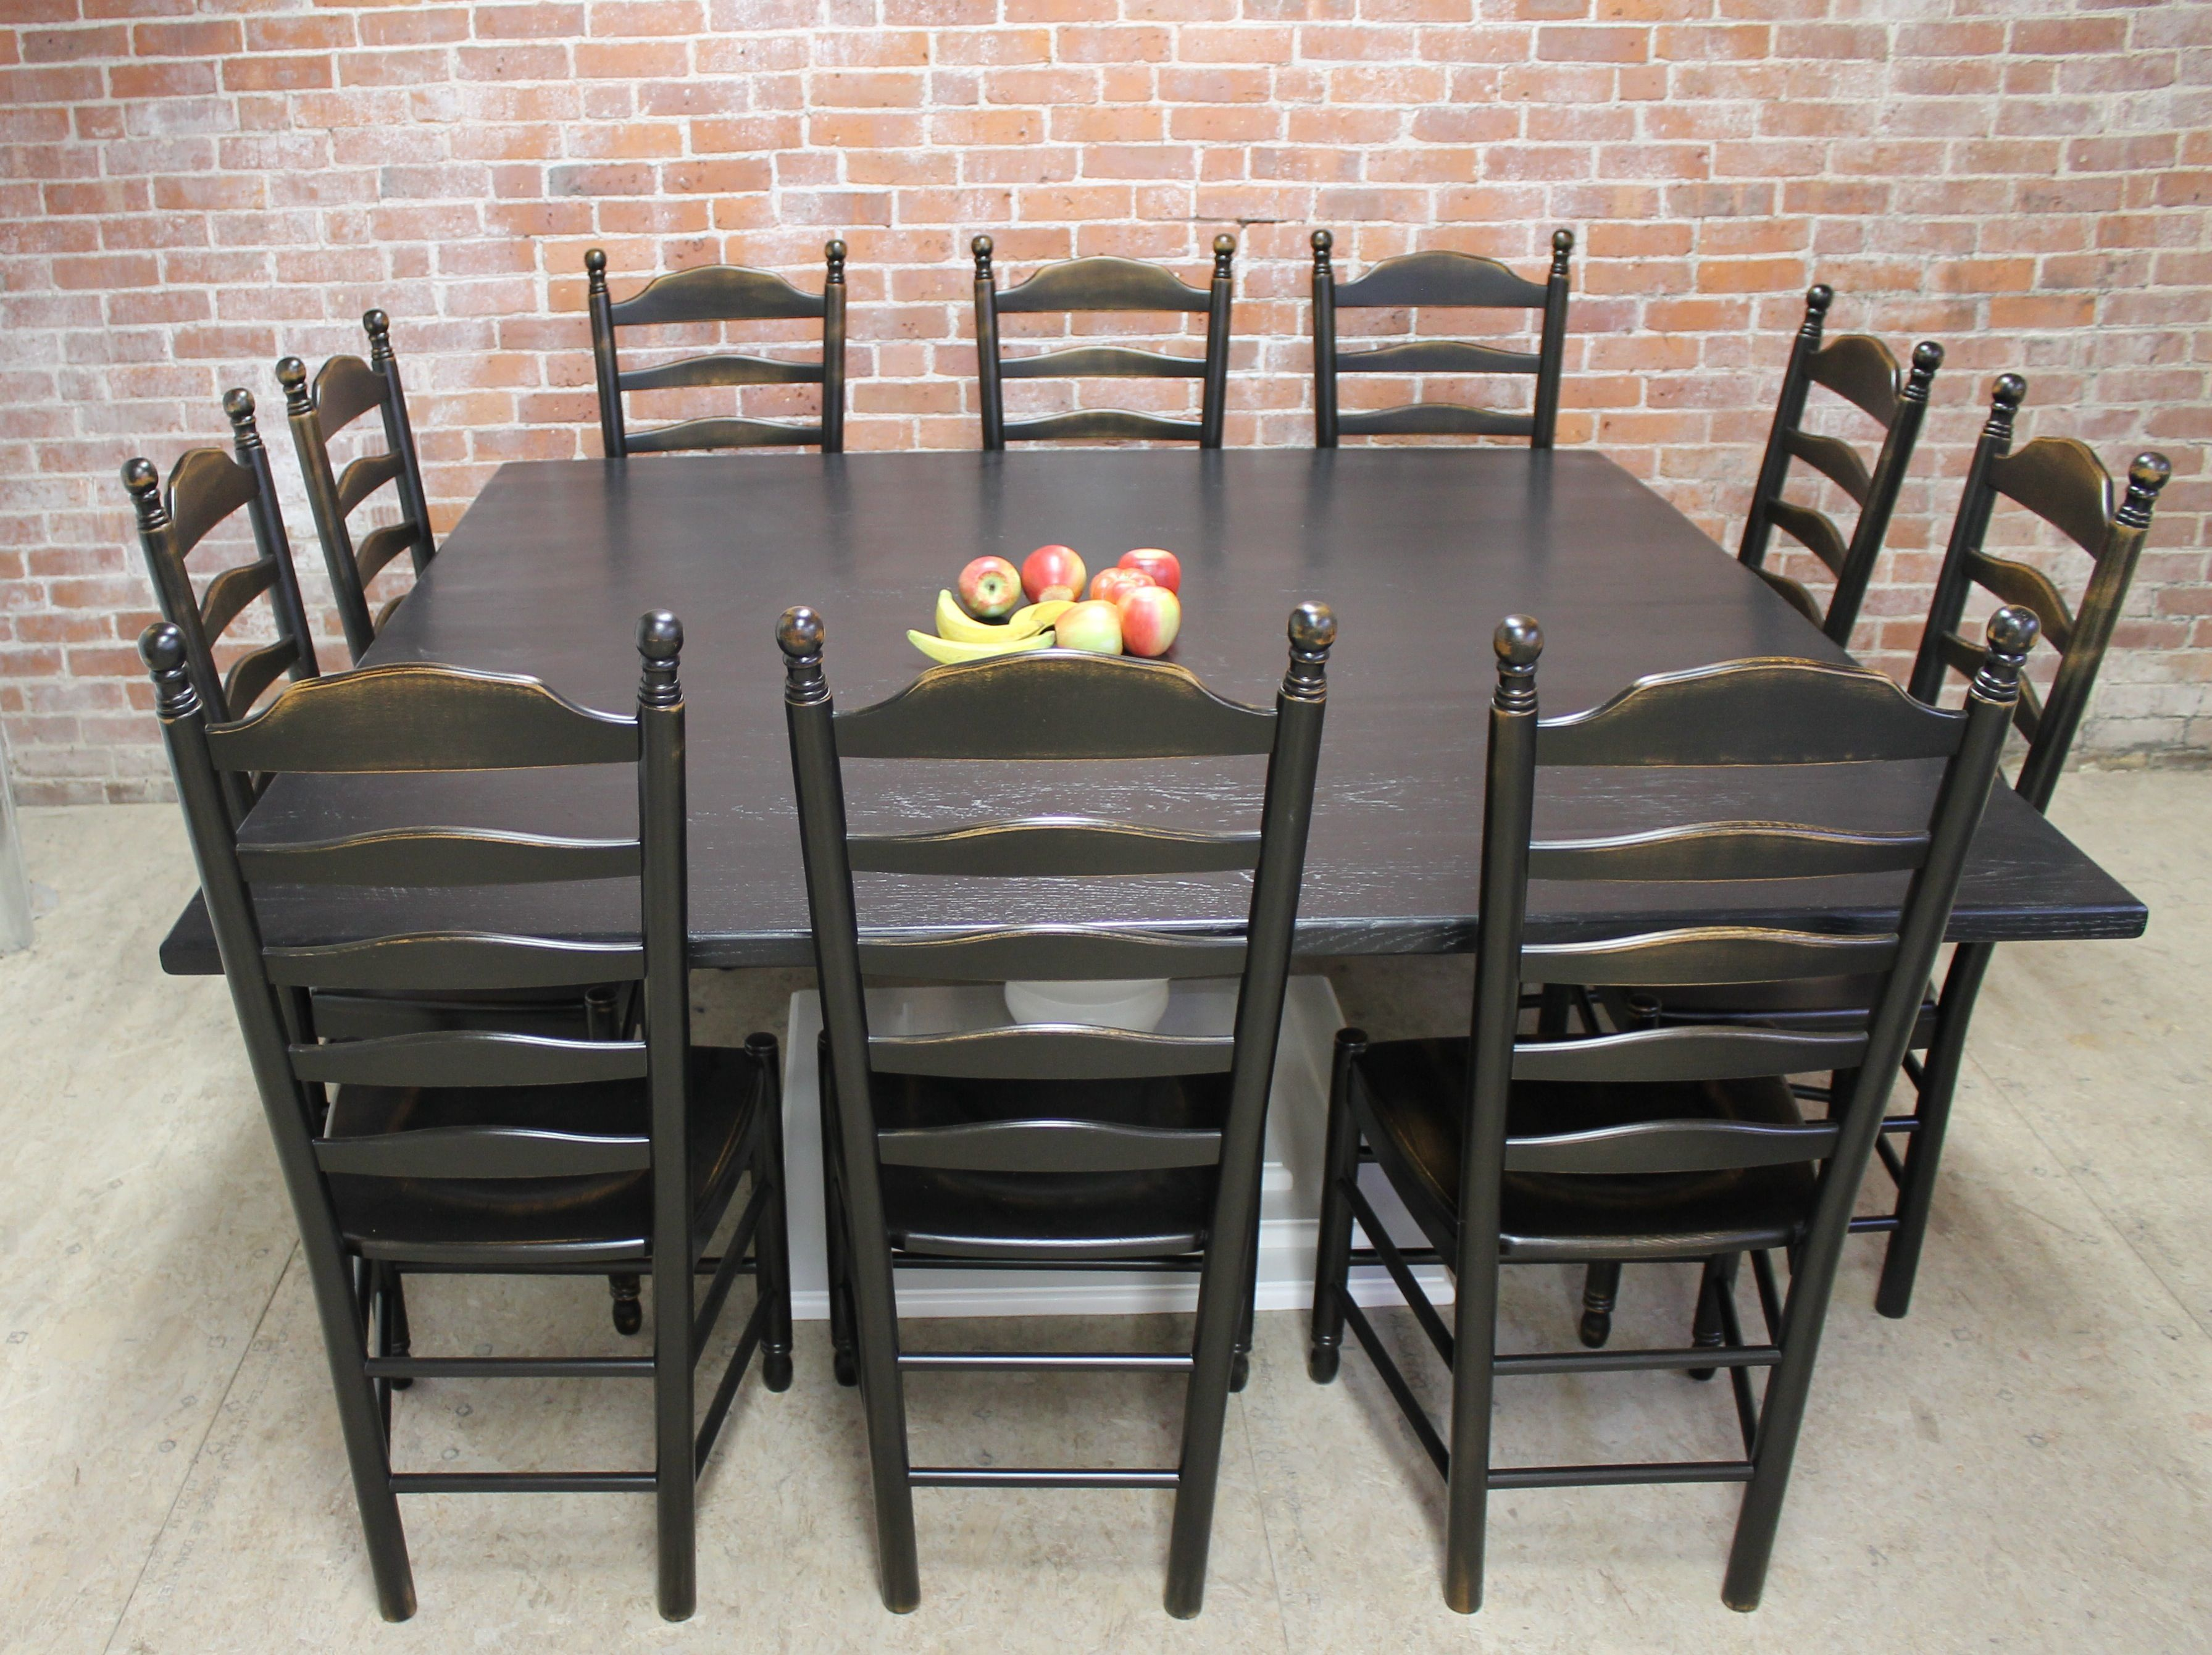 72inch Square Black and White Table Square dining tables